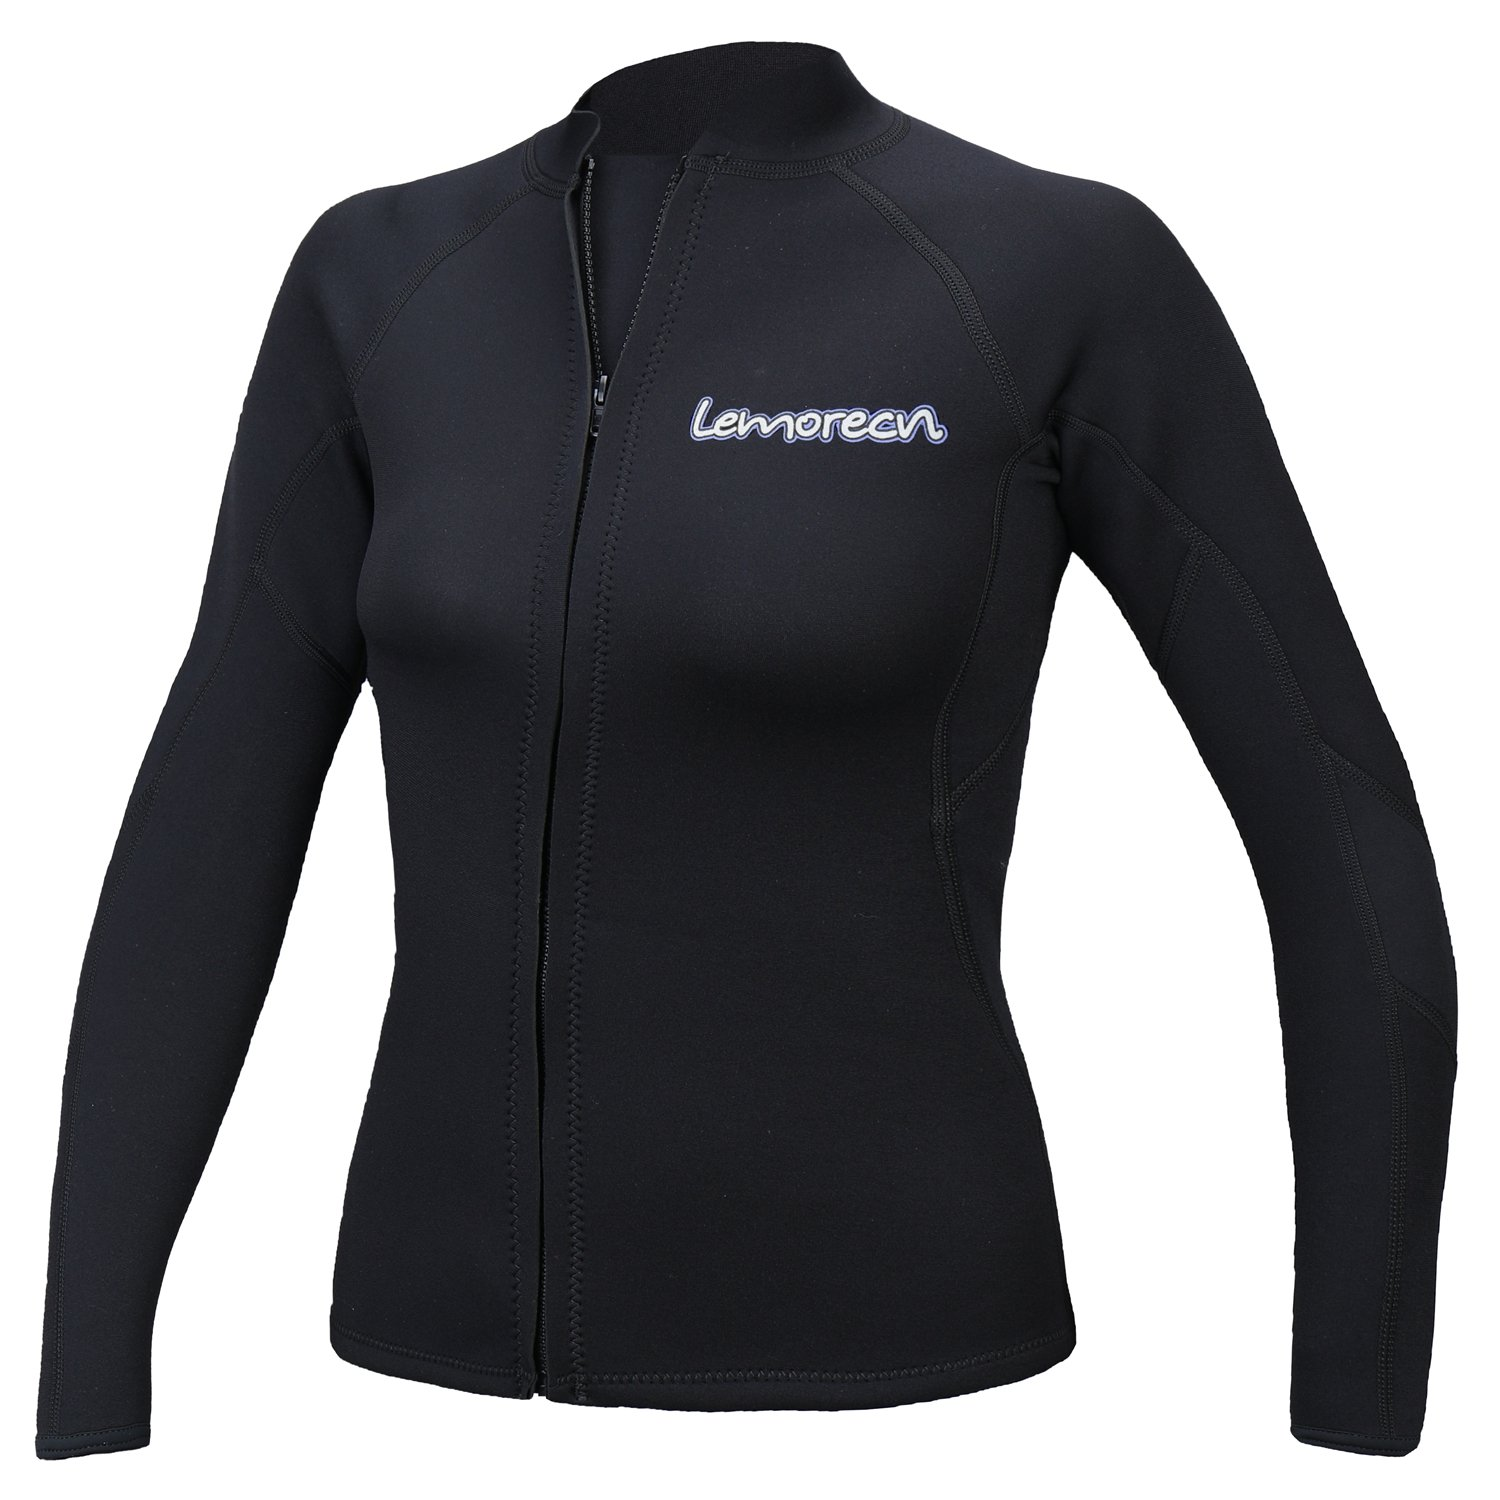 Lemorecn Women's 2mm Wetsuits Jacket Long Sleeve Neoprene Wetsuits Top(2098black14) by Lemorecn